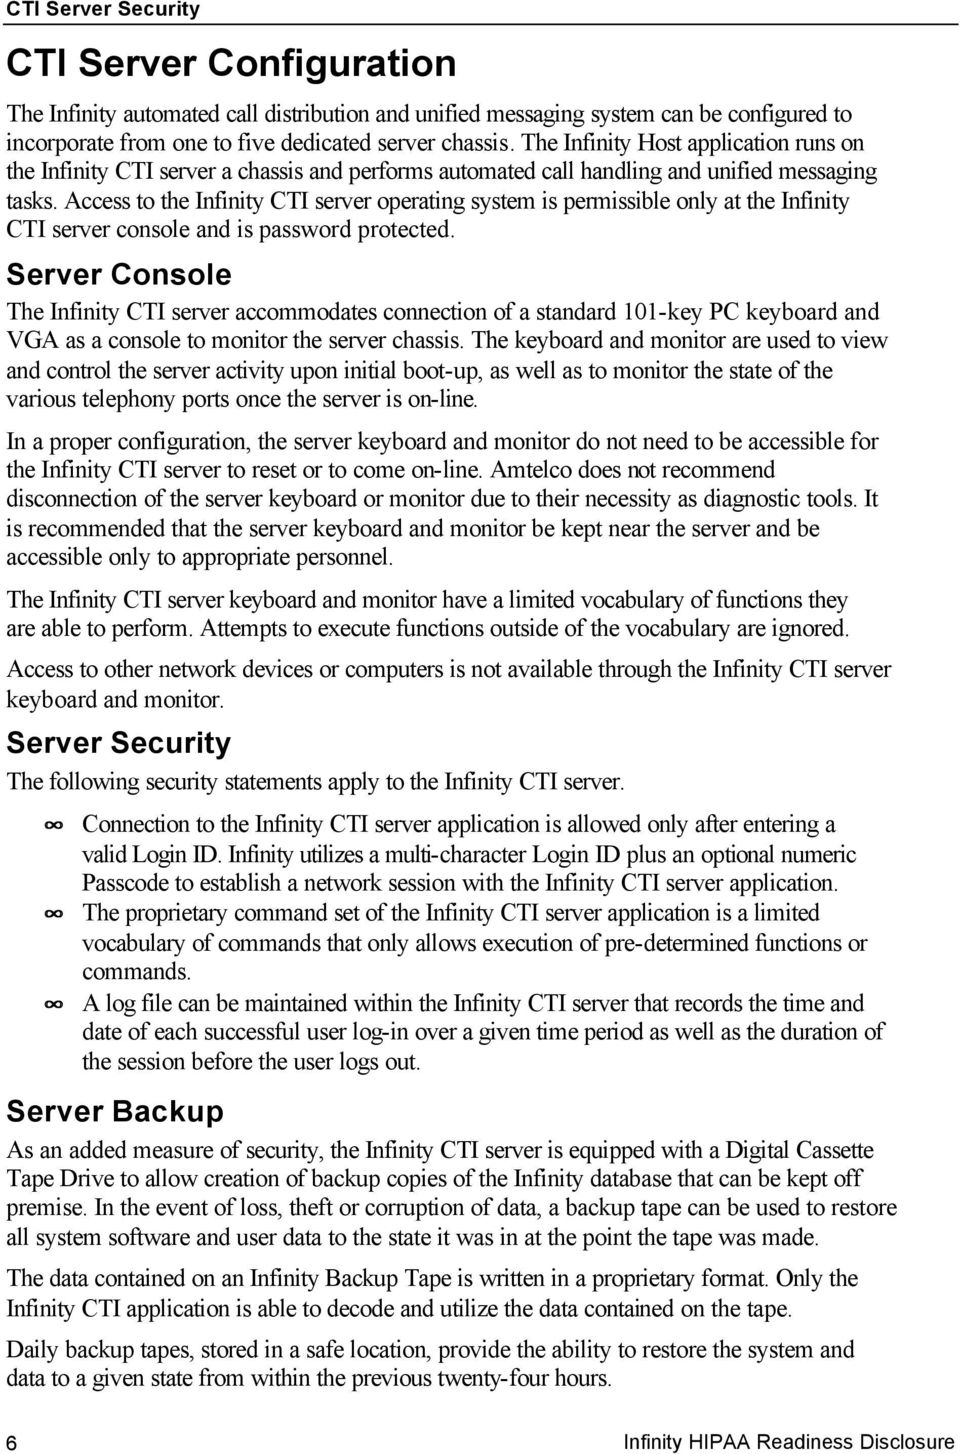 Access to the Infinity CTI server operating system is permissible only at the Infinity CTI server console and is password protected.